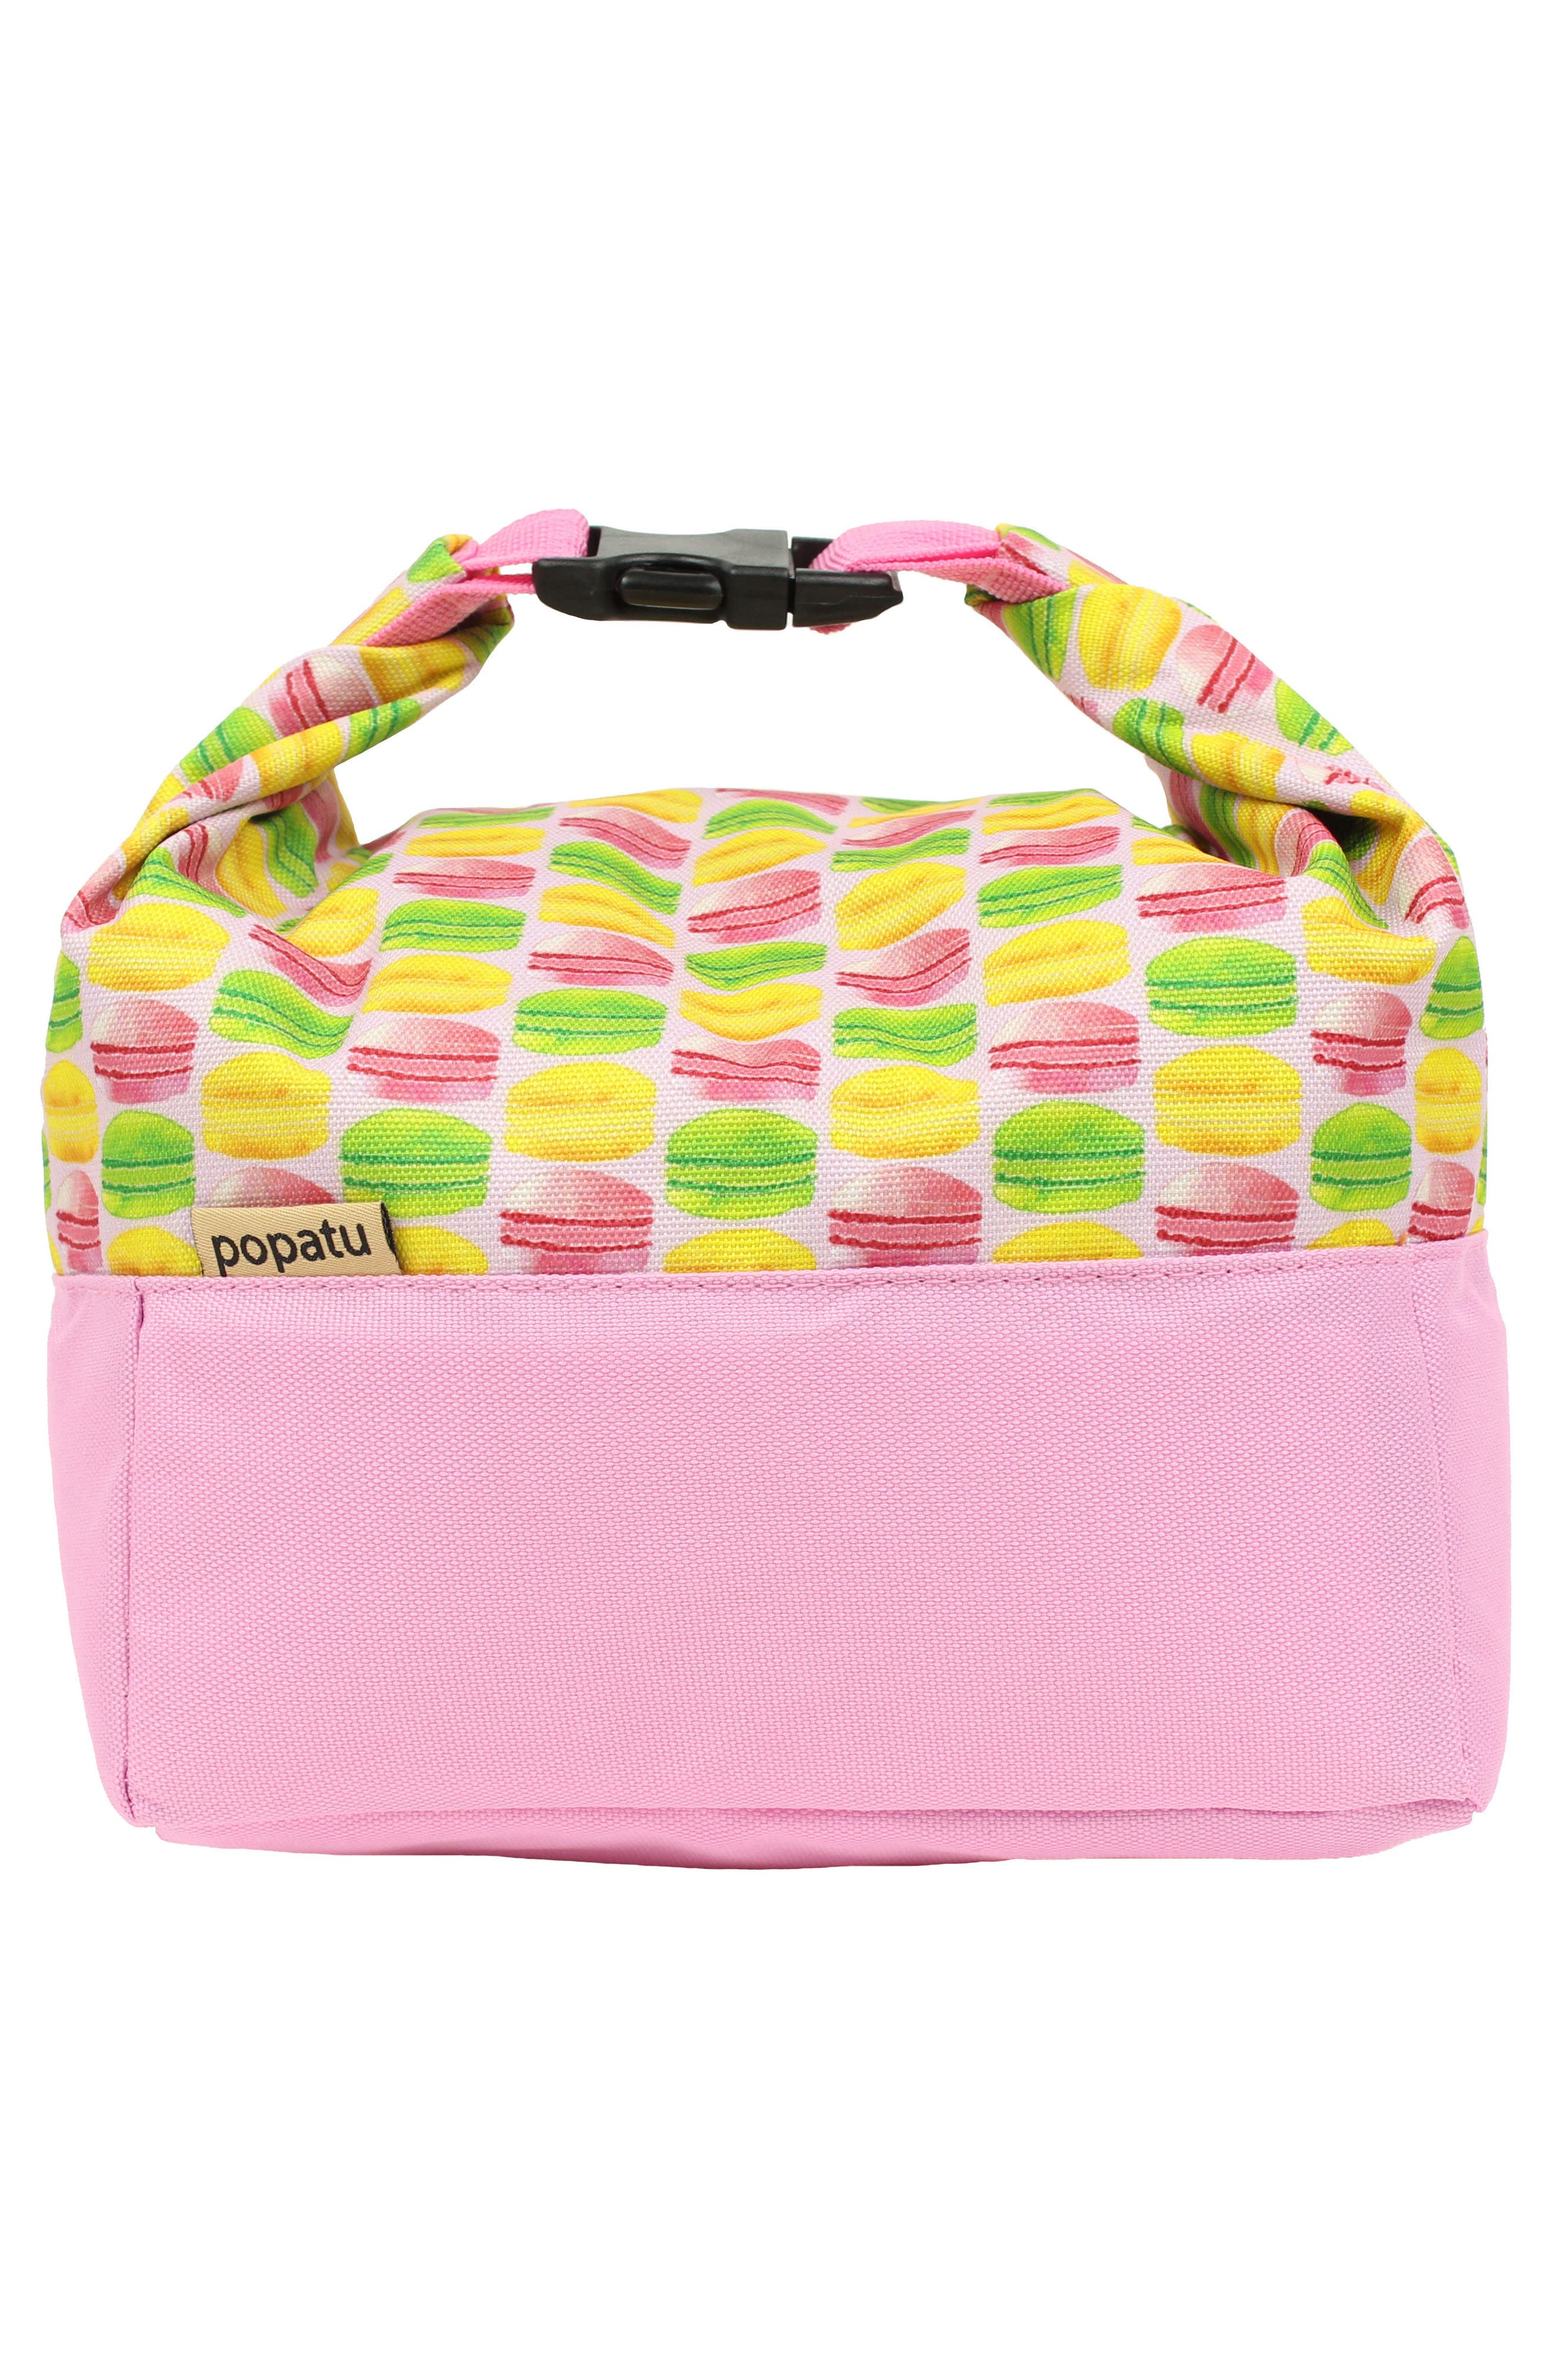 Macaron Print Roll Top Lunch Bag,                             Alternate thumbnail 4, color,                             Pink